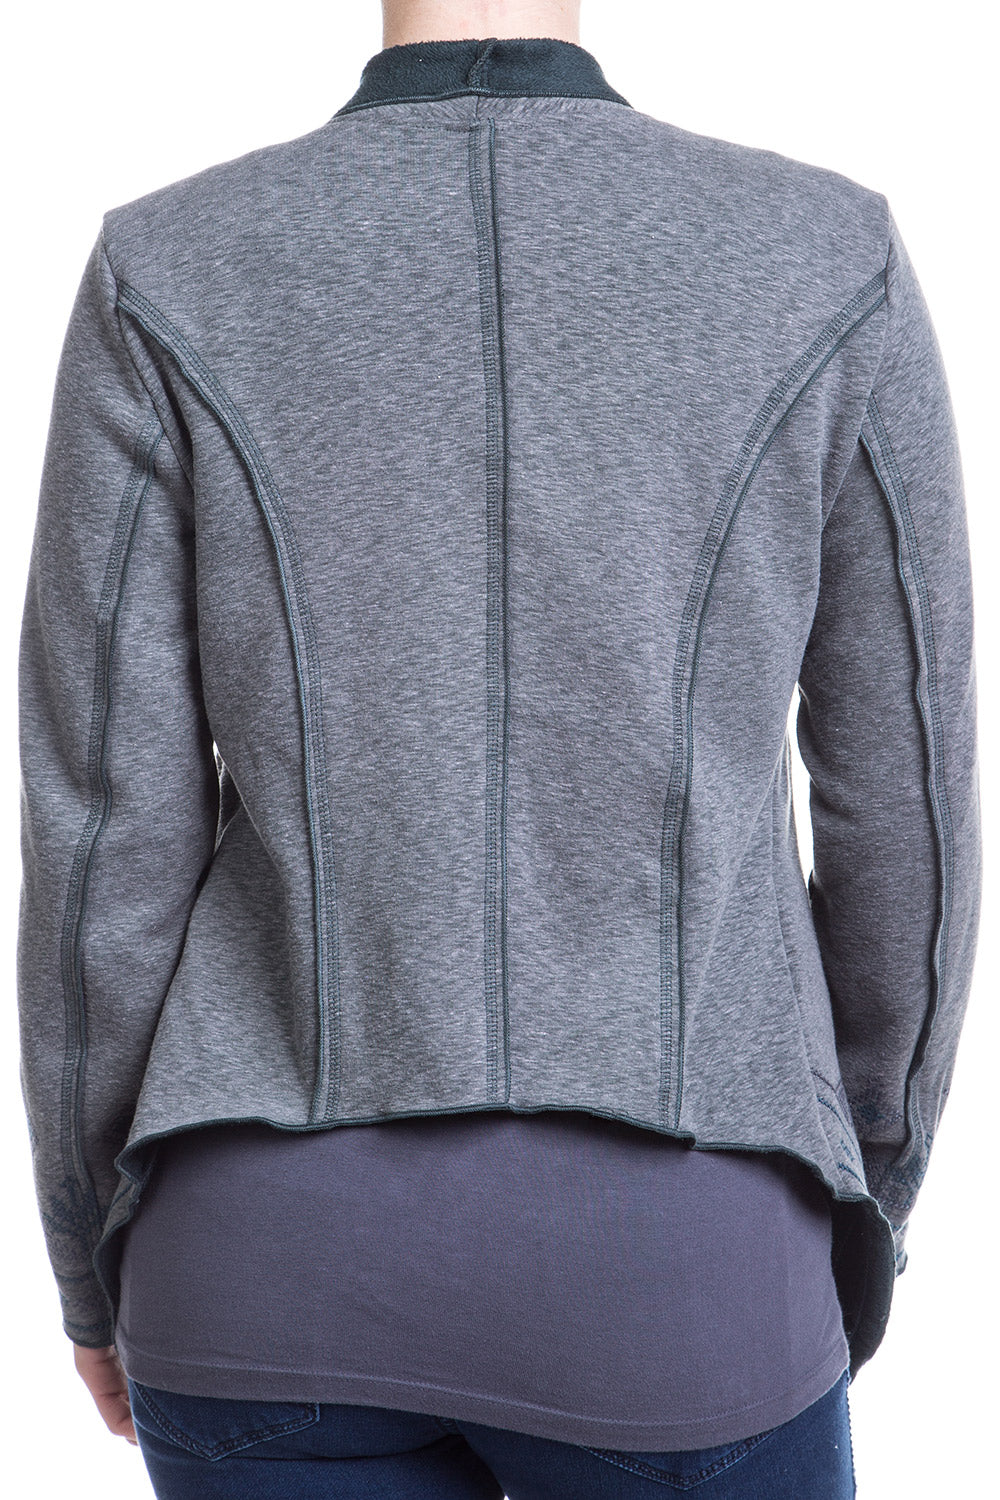 Type 2 Put Out Your Fleece Cardigan